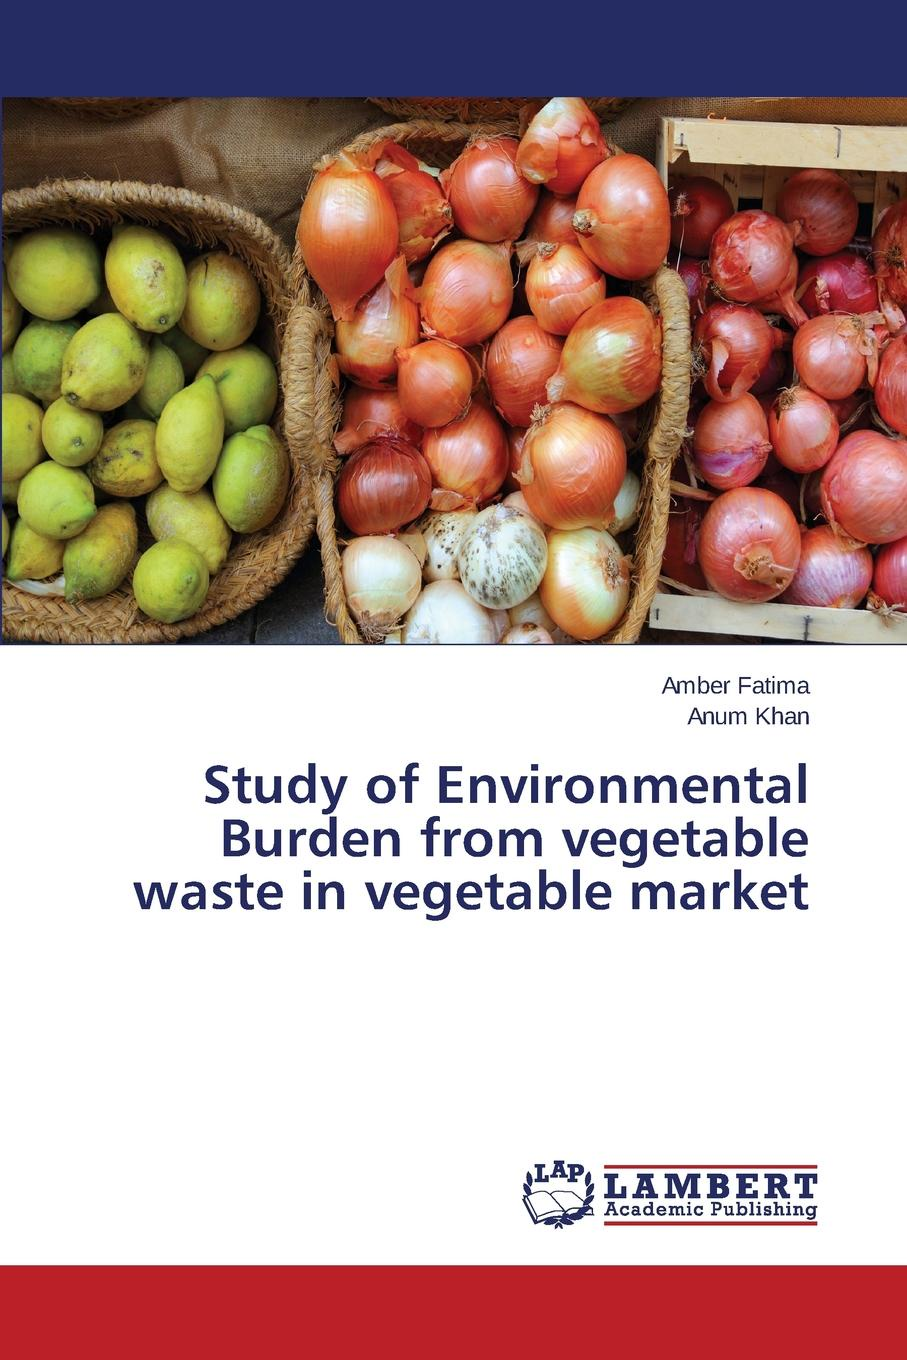 Fatima Amber, Khan Anum Study of Environmental Burden from vegetable waste in vegetable market kevin henke arsenic environmental chemistry health threats and waste treatment